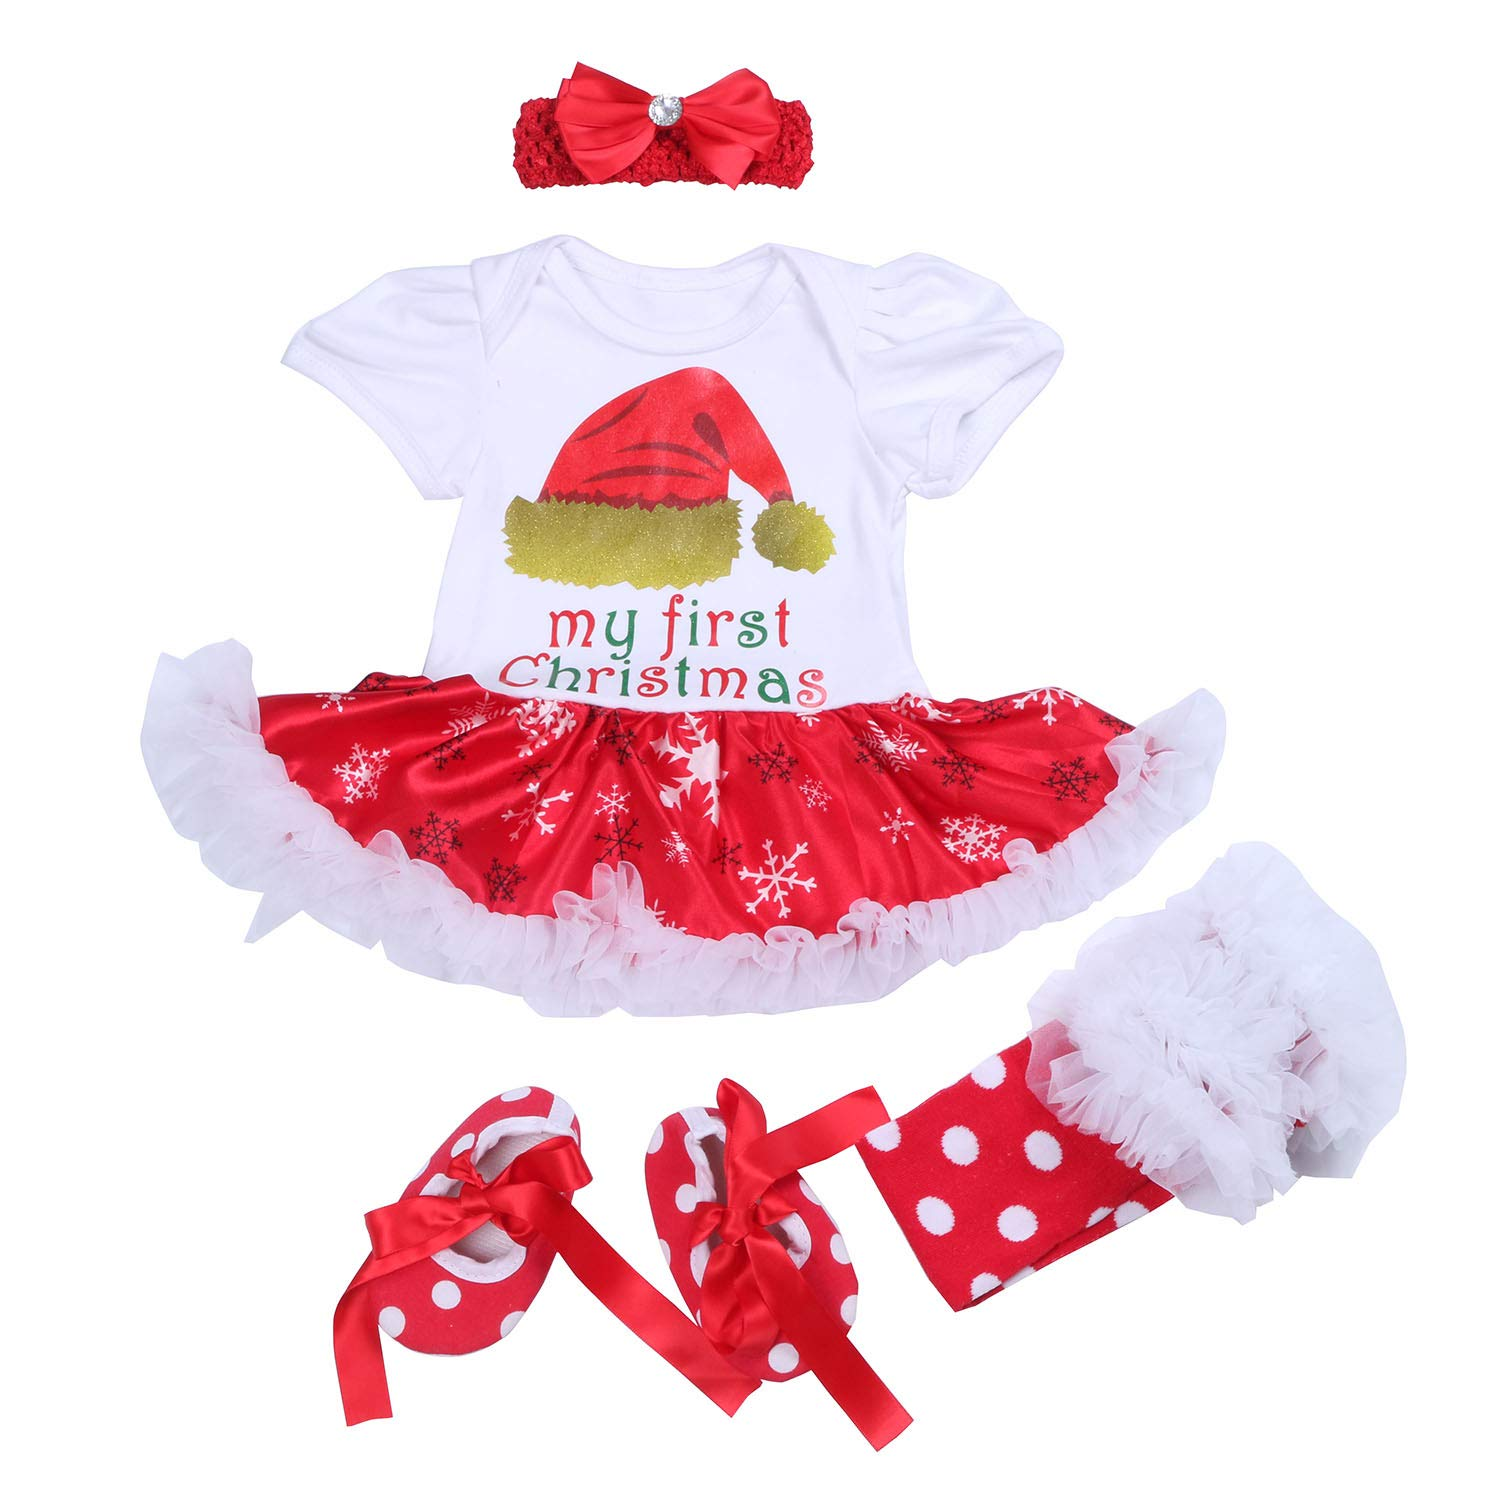 BabyPreg Infant Baby Girl My First Christmas Outfits Romper Tutu Dress Headband